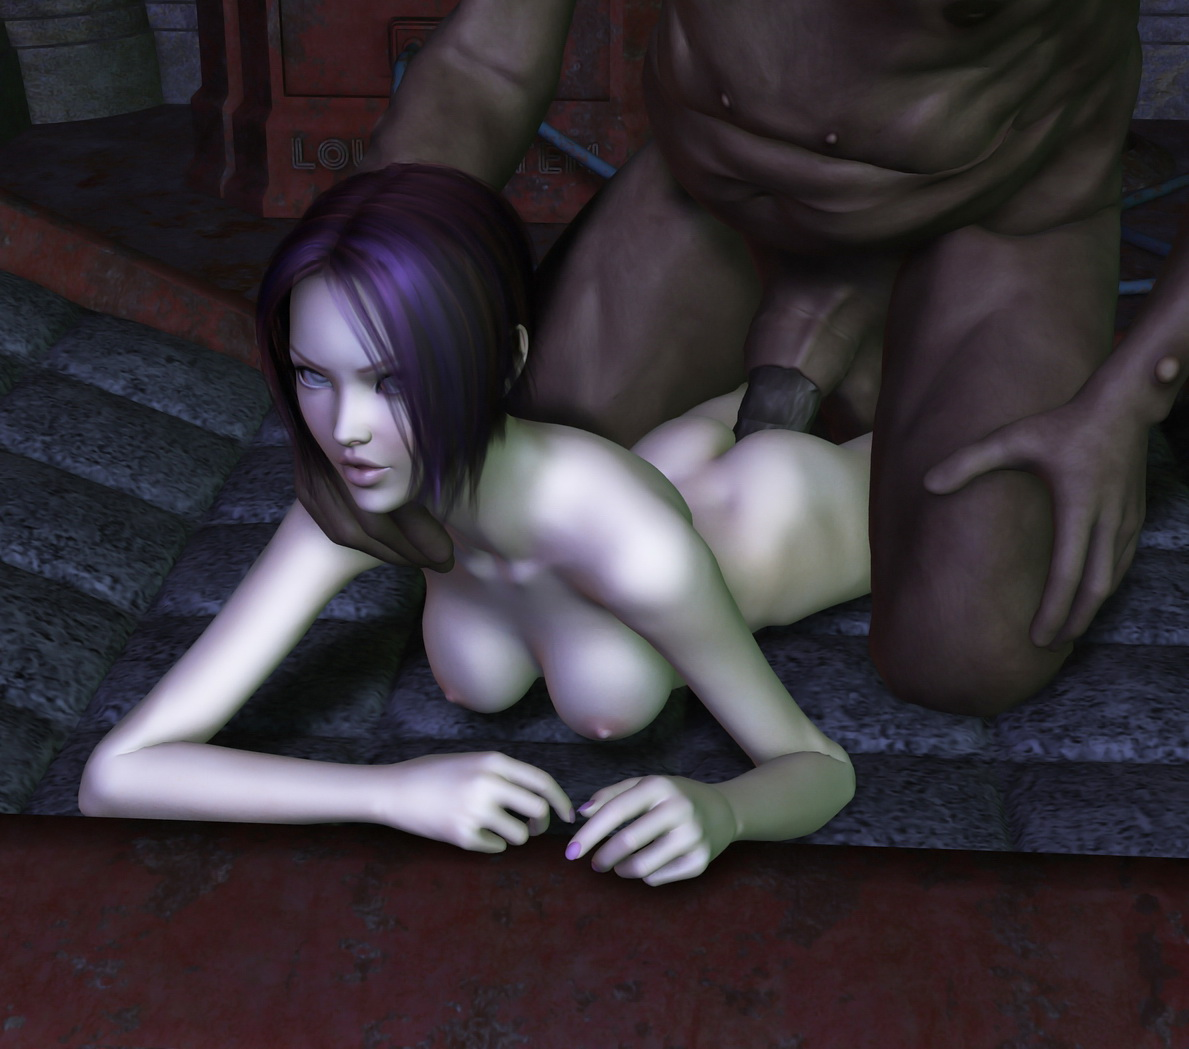 3d monster porn on youtube adult image